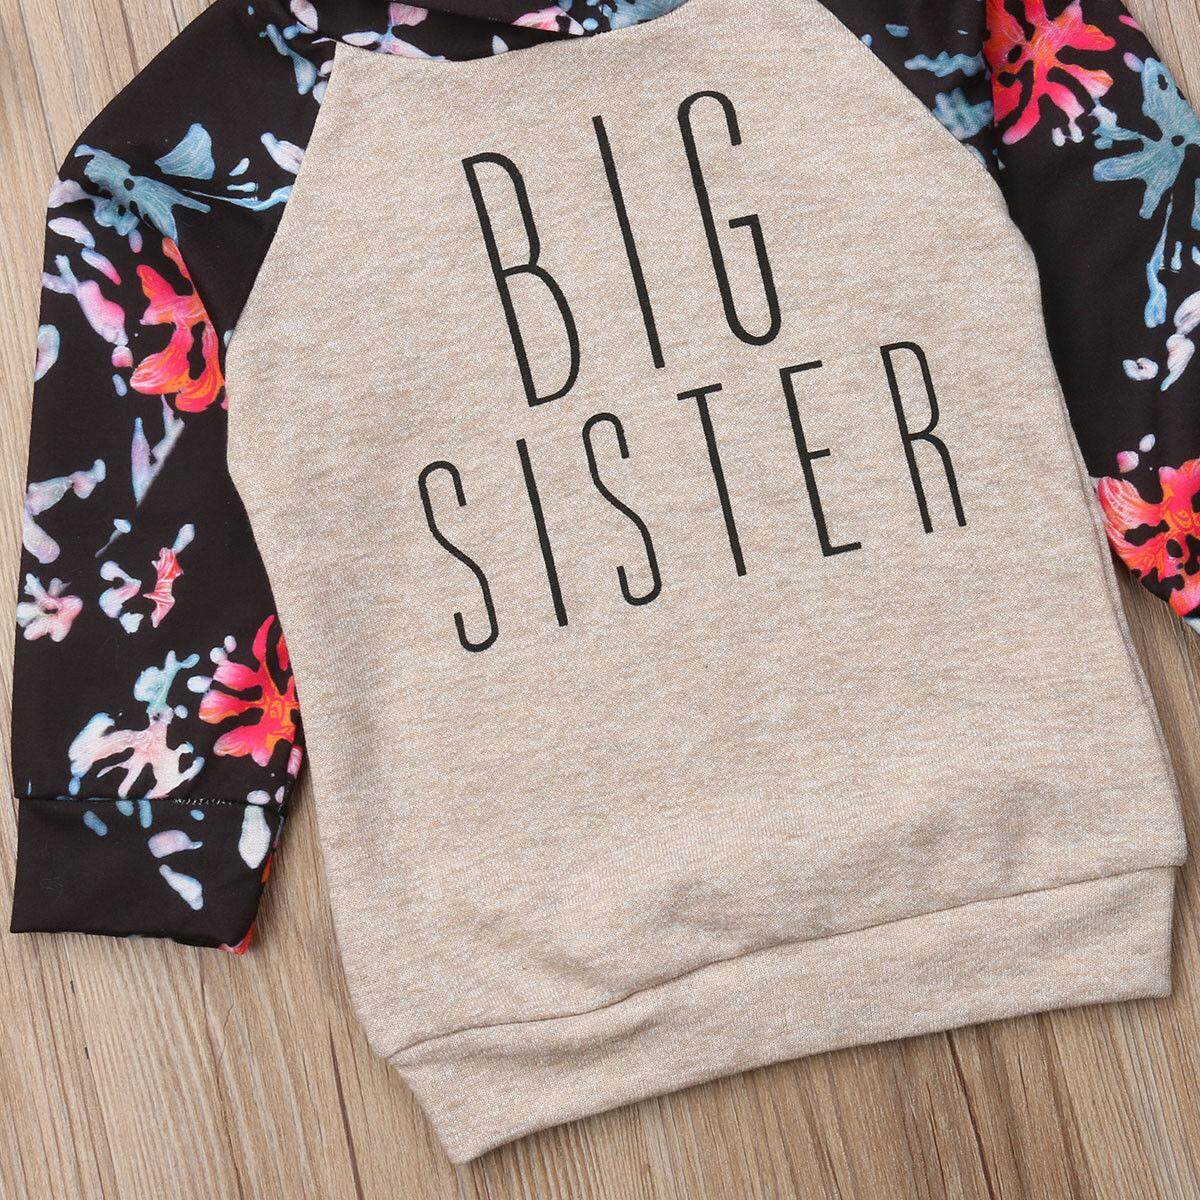 Baby Girl Sister Matching Clothes Long Sleeve Floral Bodysuit Hooded Sweatshirt Top Kids Jumpsuit Romper Outfit